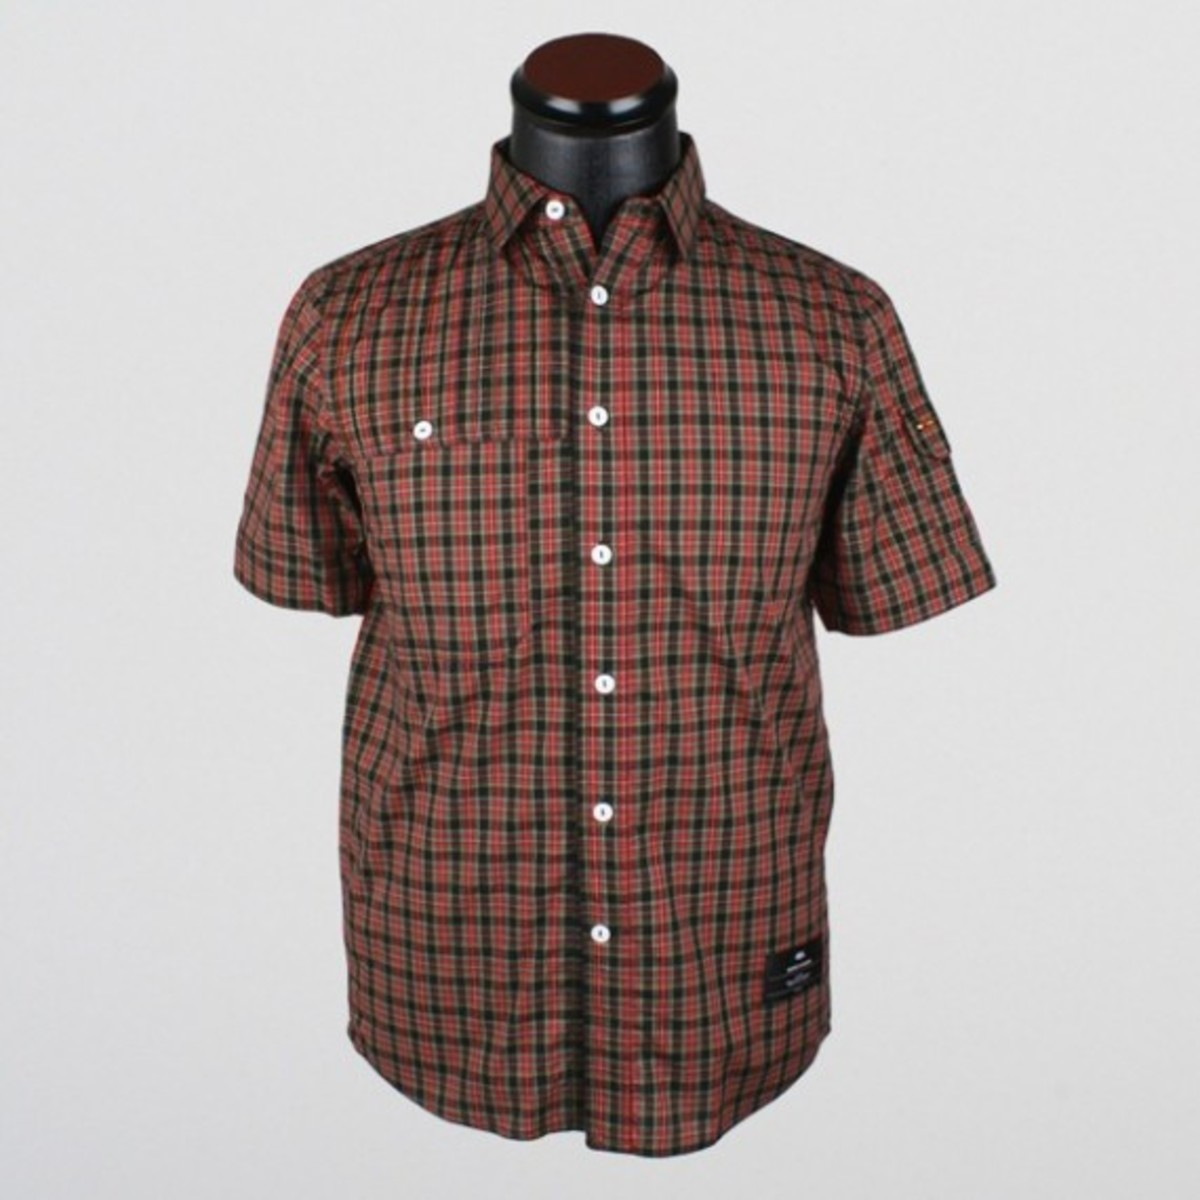 STPL-West-Short-Sleeve-Button-Shirt-SP11_4